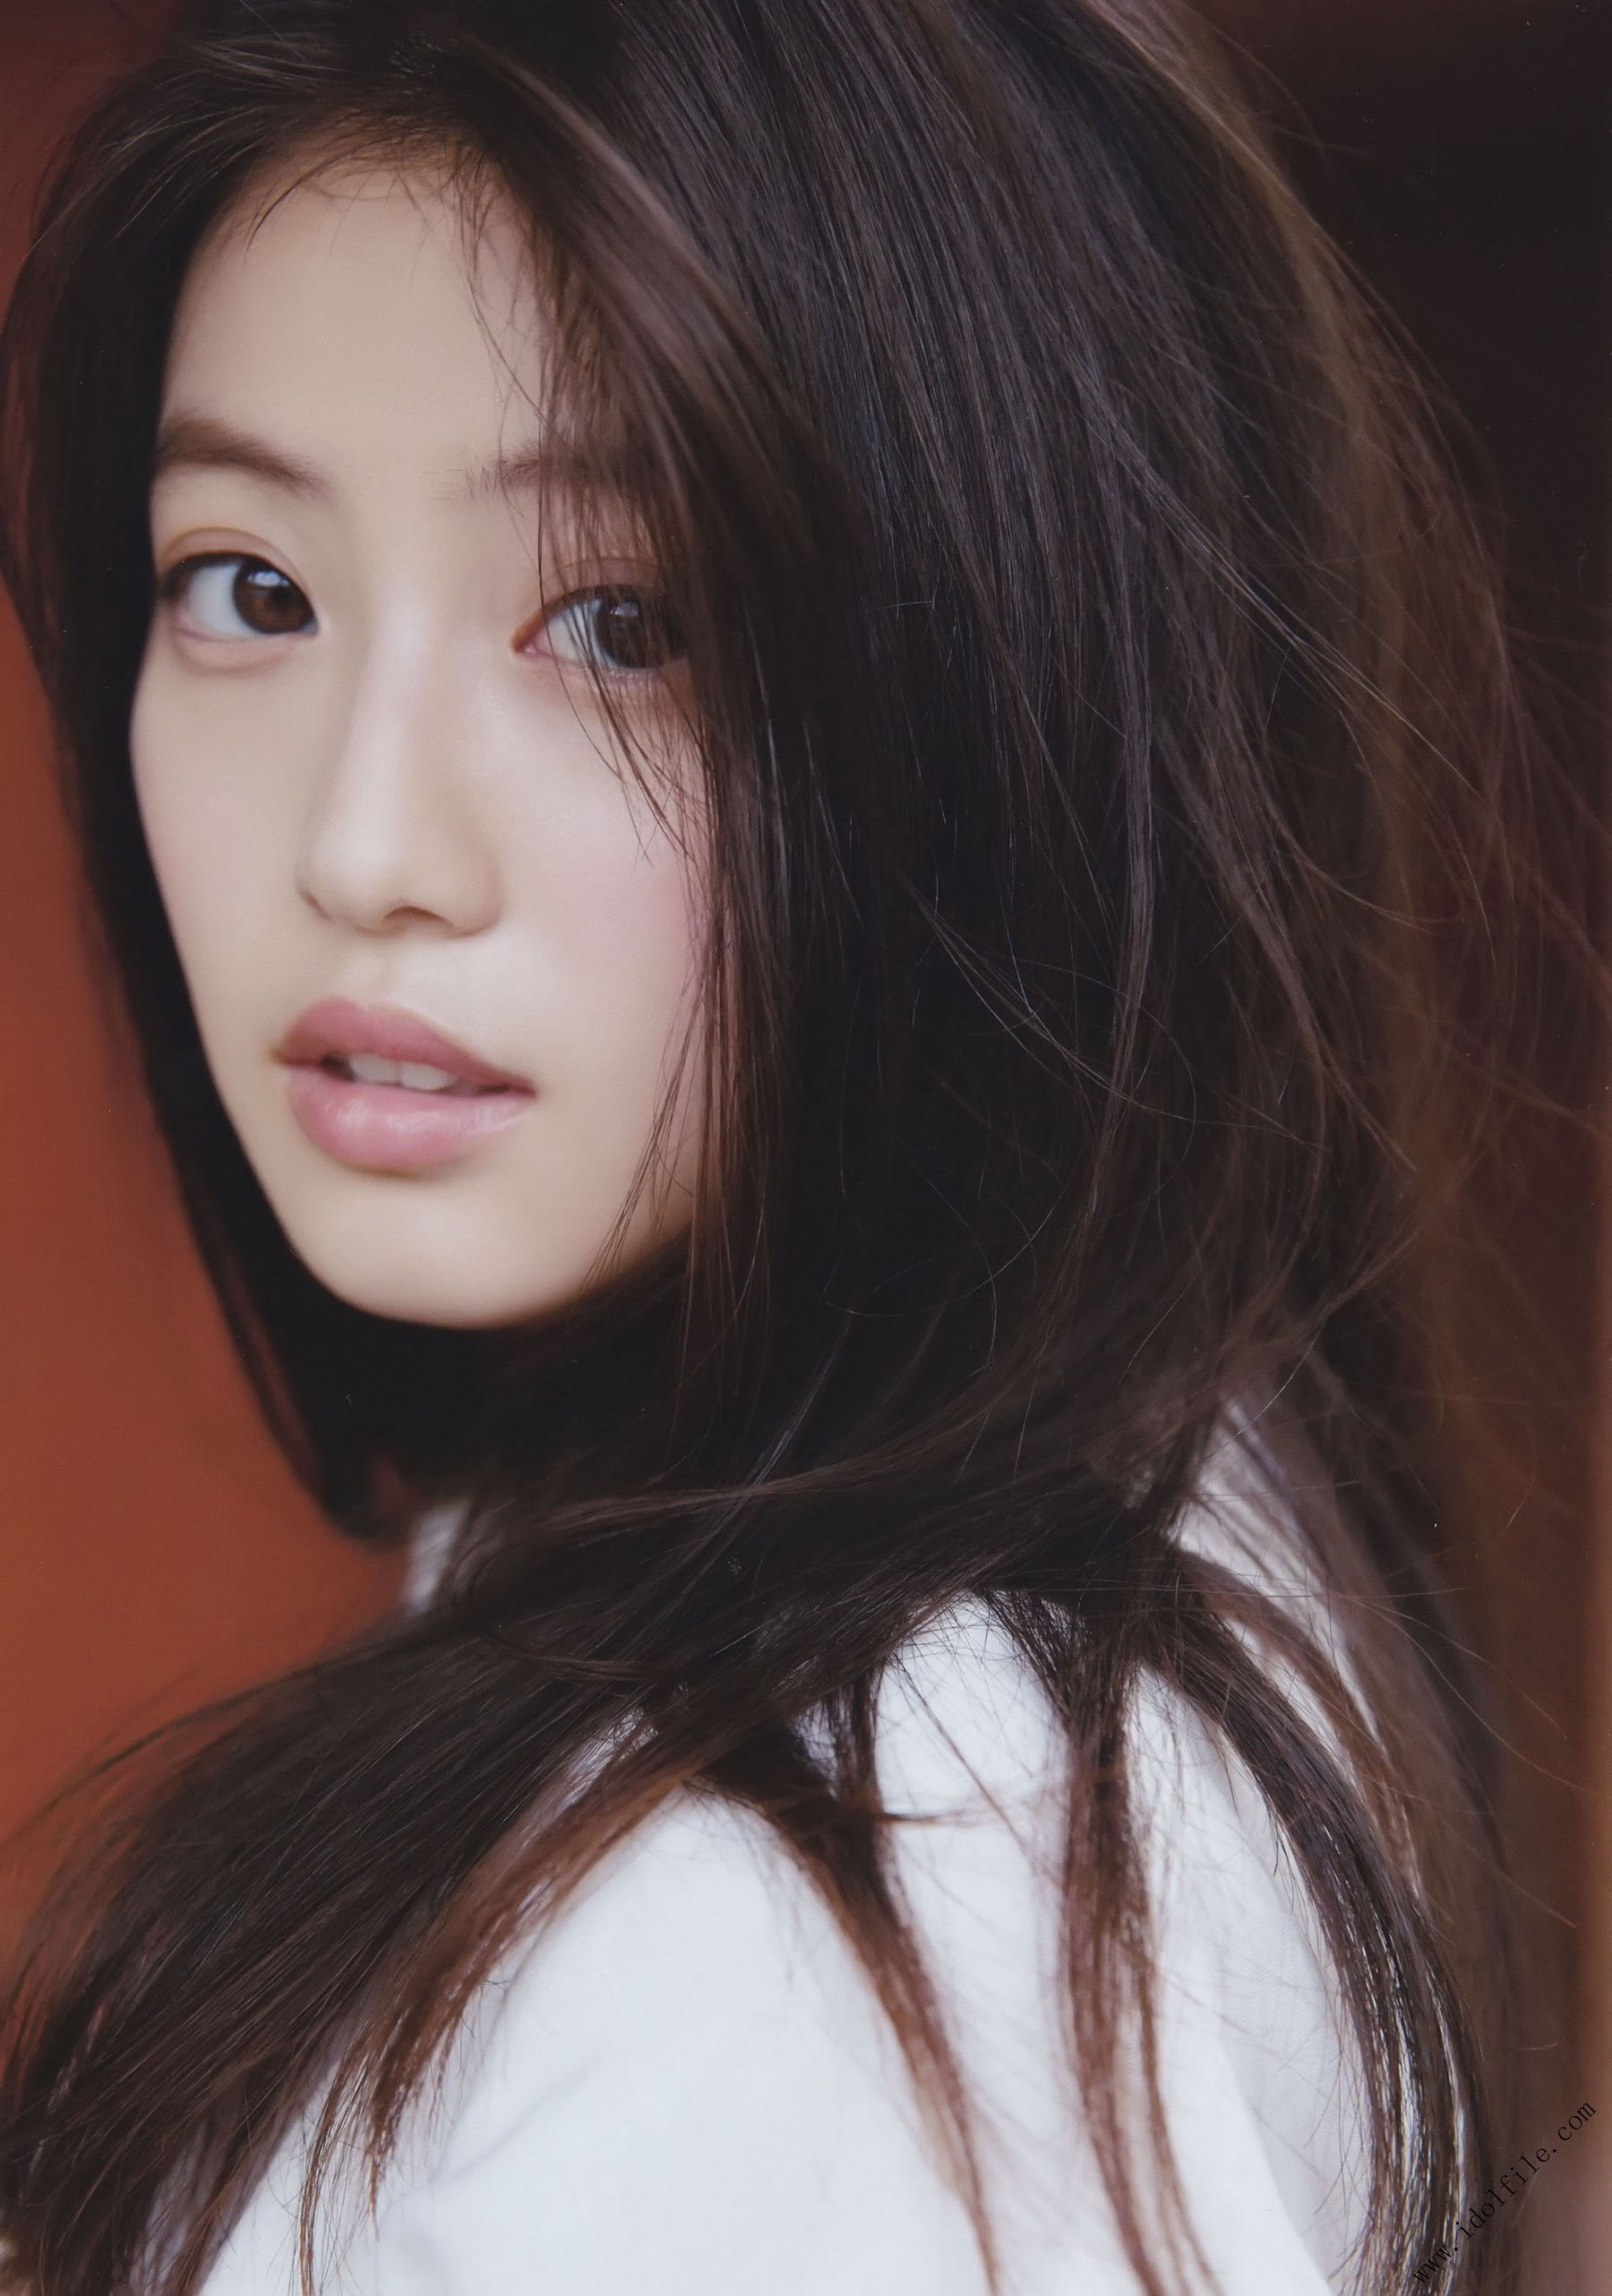 Pretty and beautiful, 22 years old and innocent Moving to the next stage as an actress Mio Imada019